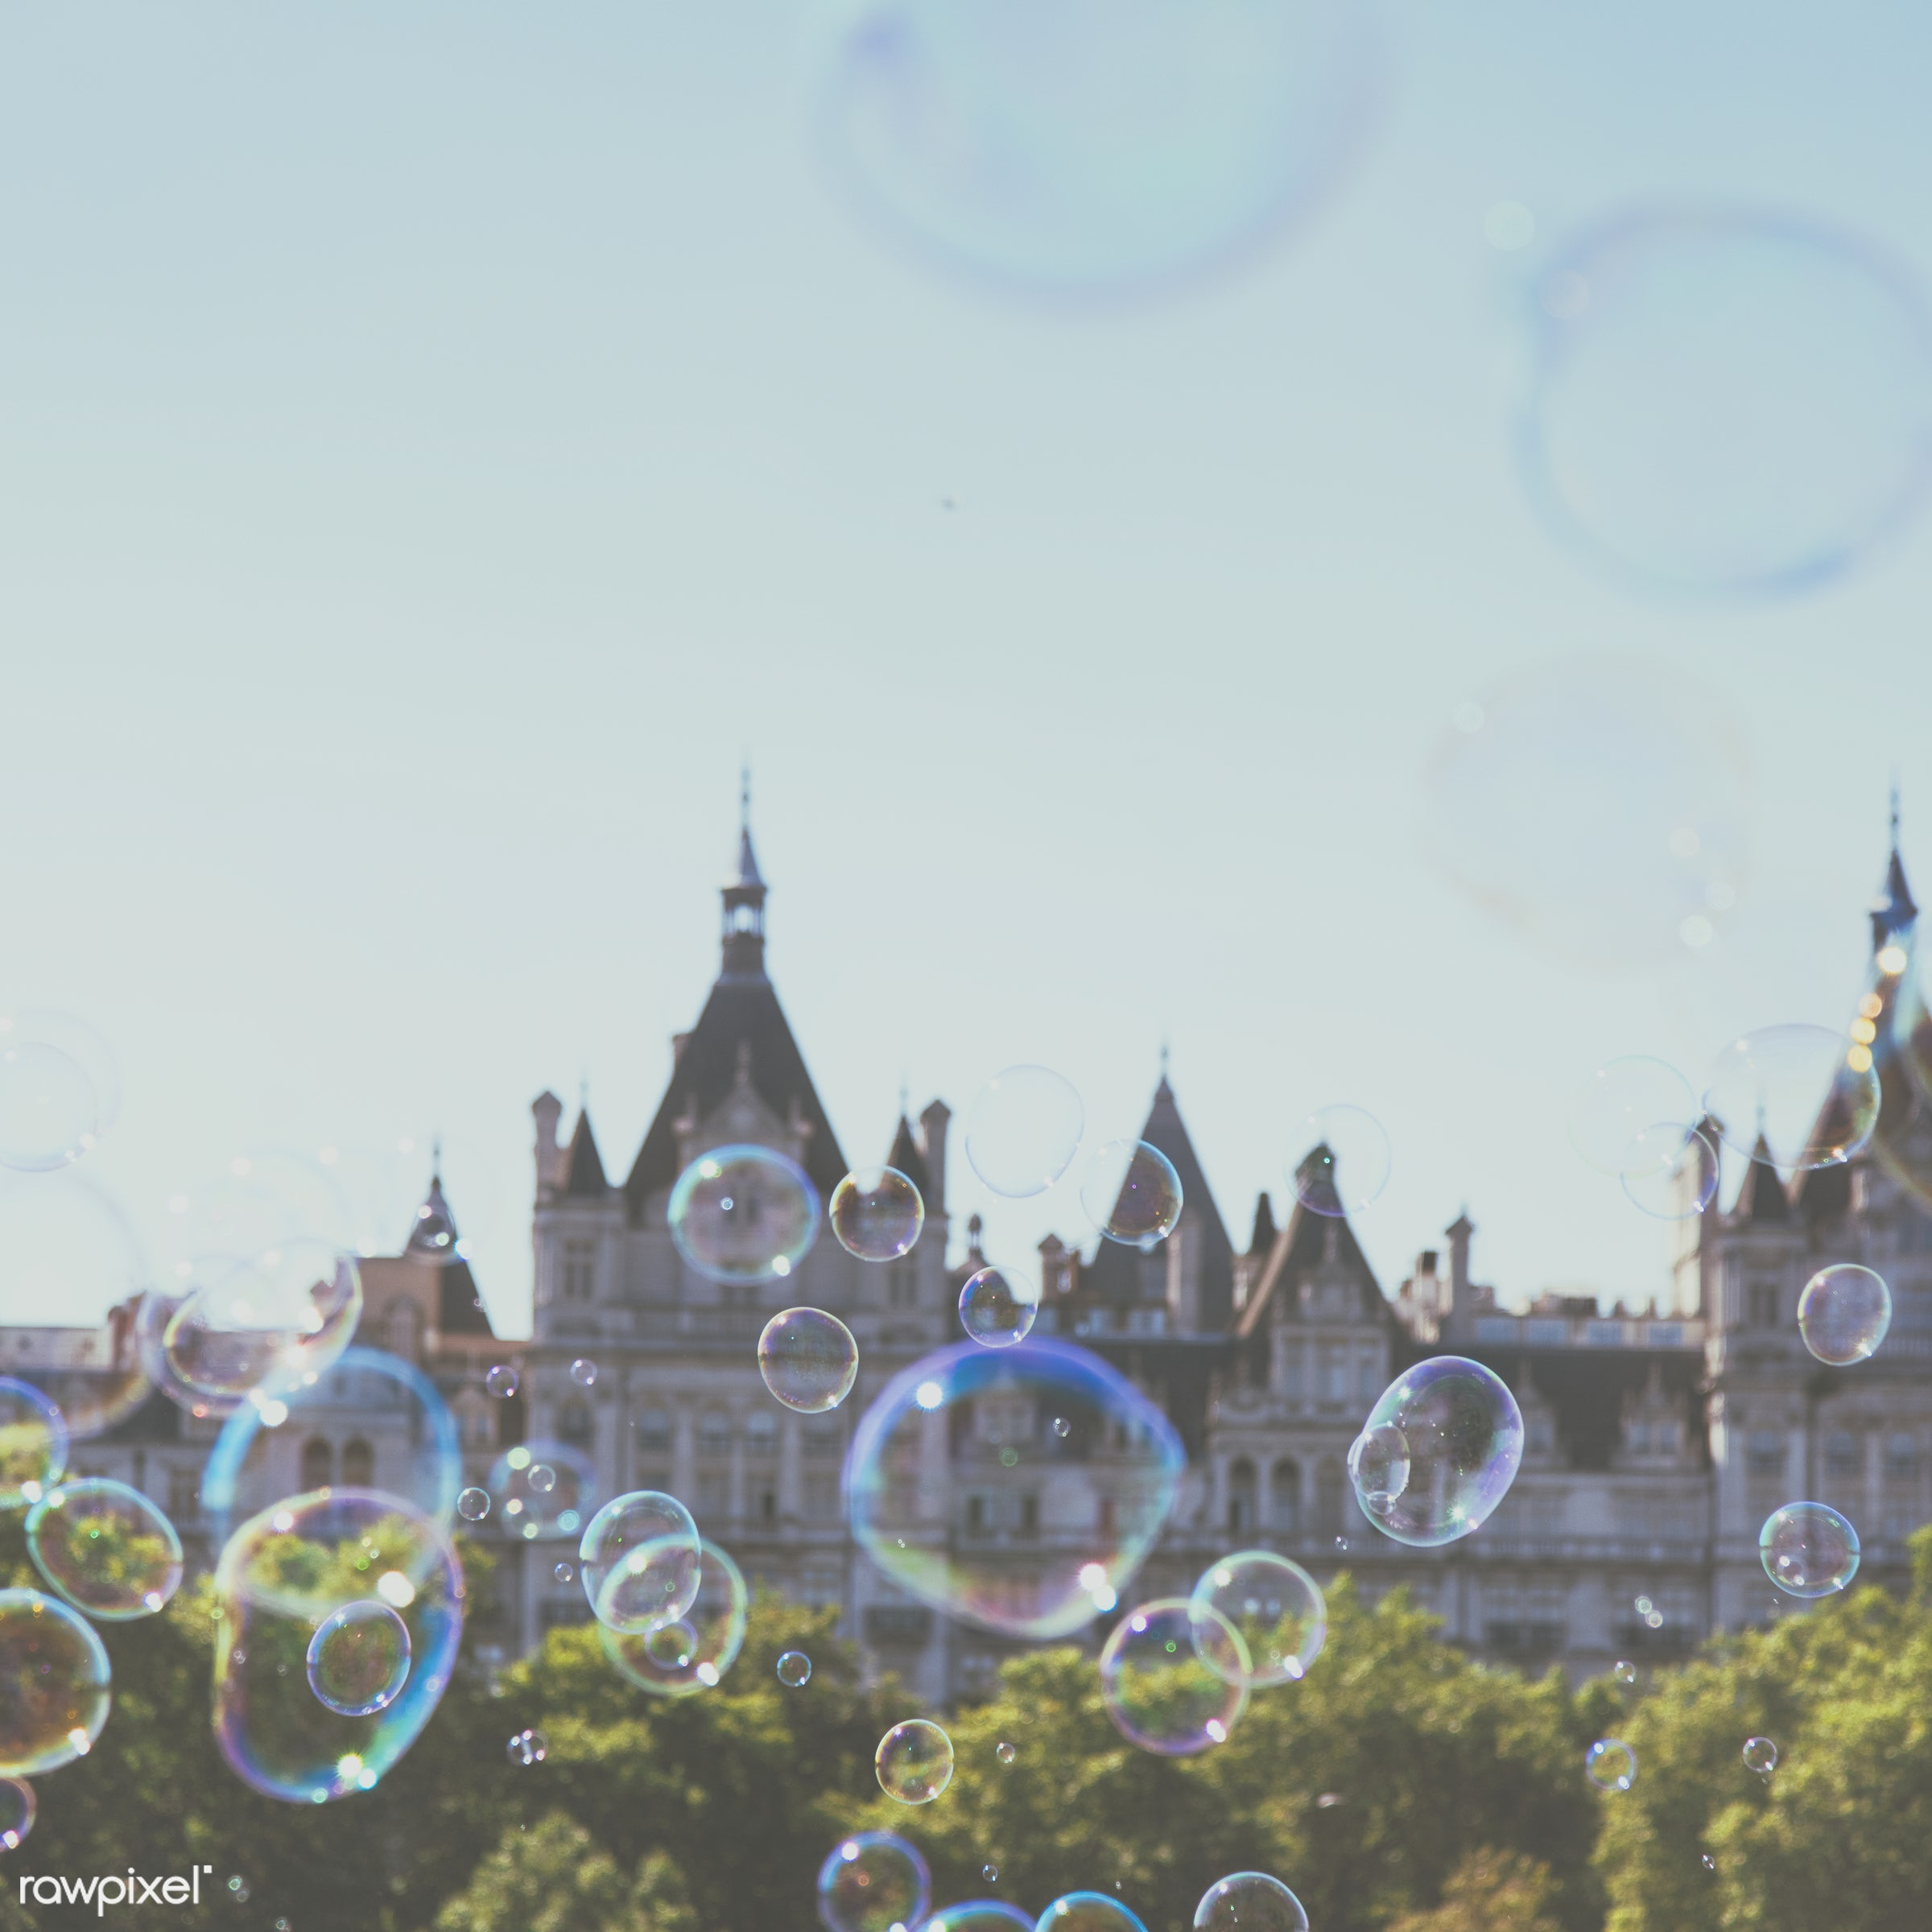 Bubbles with Parliament building on the background - air, architecture, background, ball, blowing, building, circle, city,...